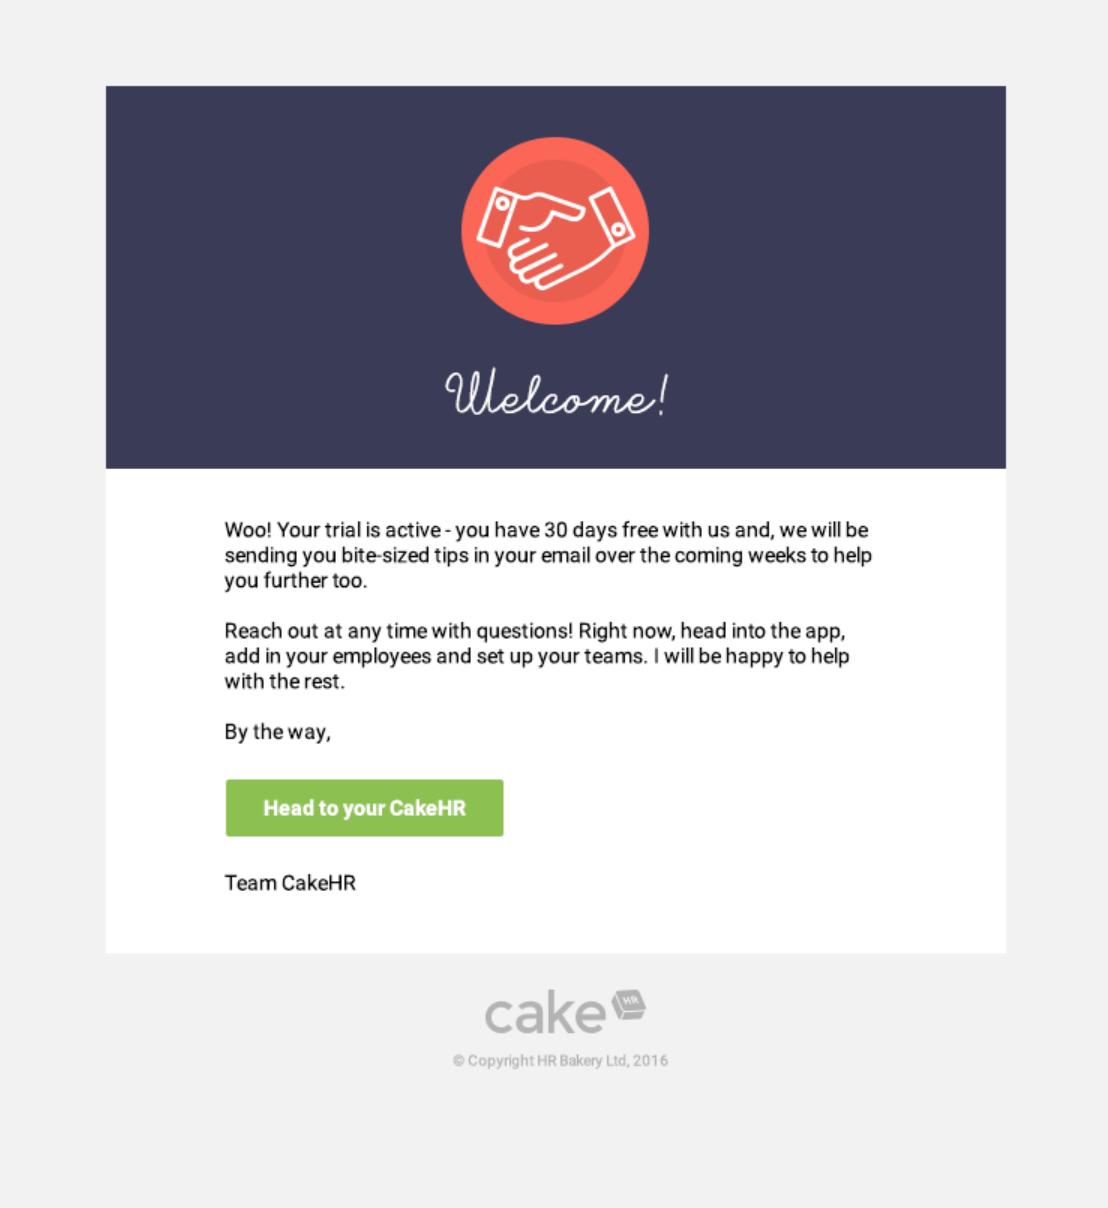 Image of welcome email